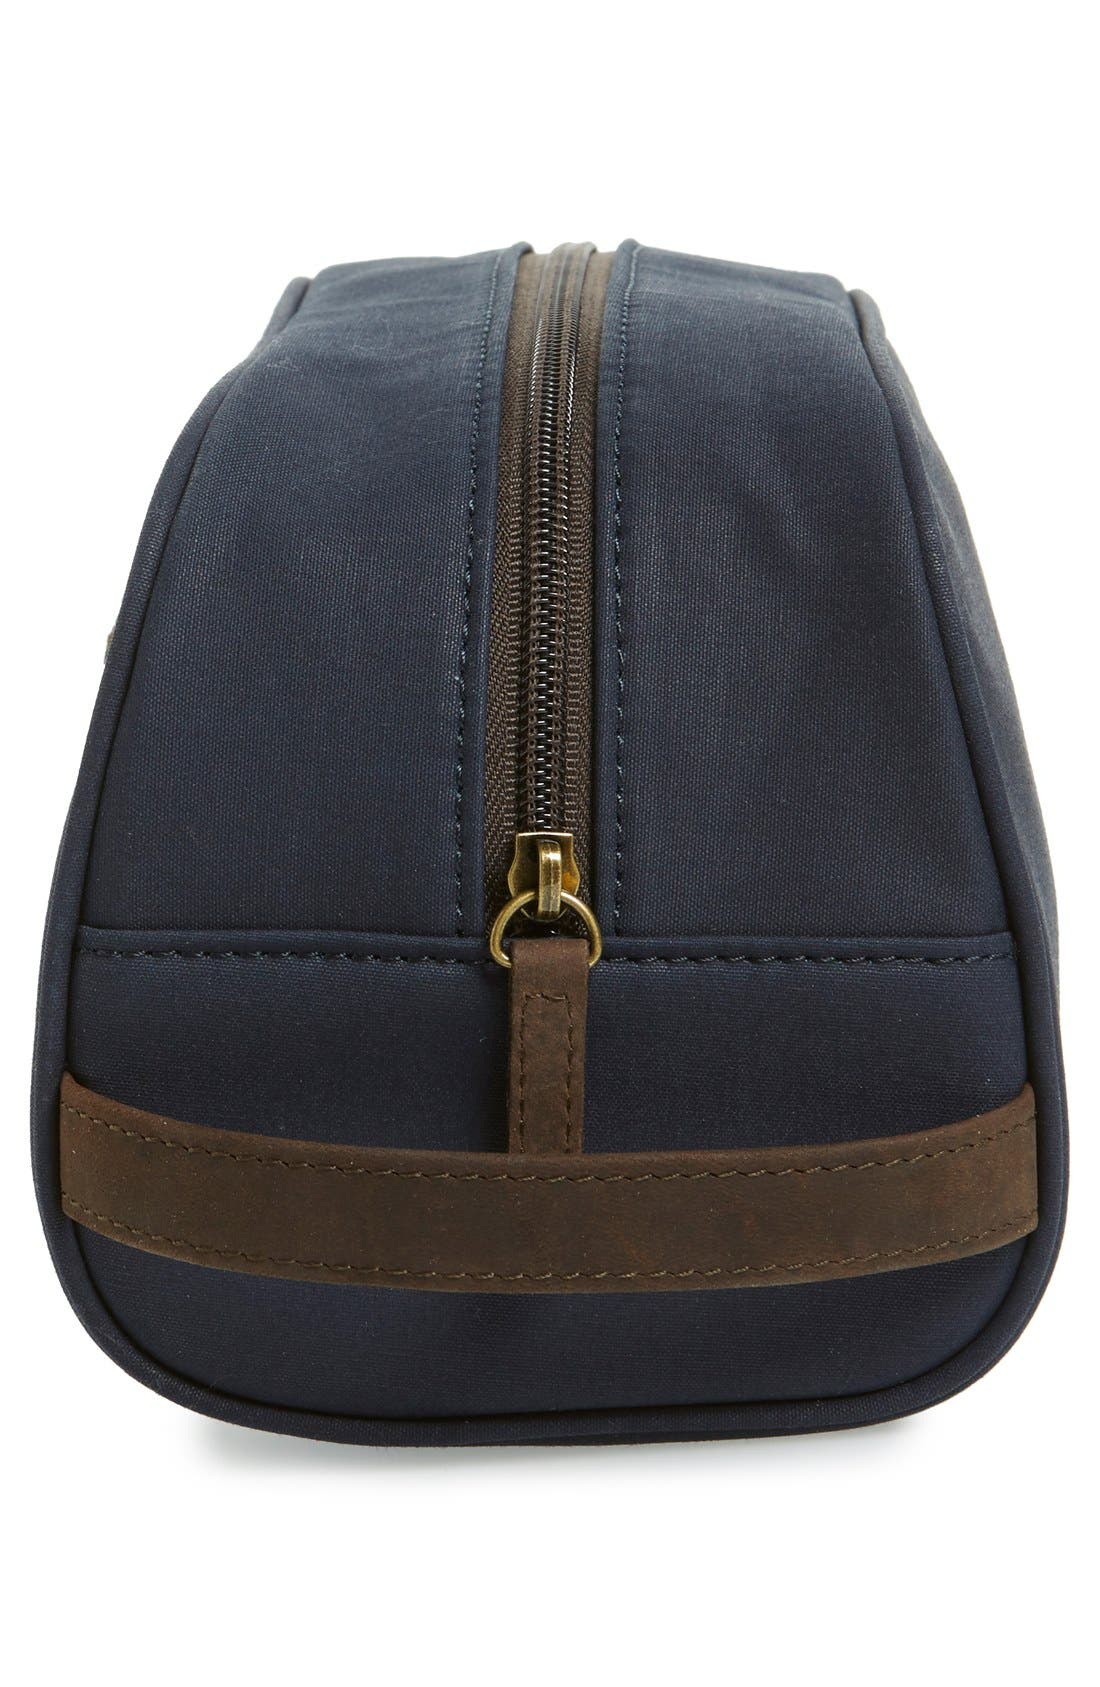 BARBOUR, Waxed Canvas Travel Kit, Alternate thumbnail 4, color, 410